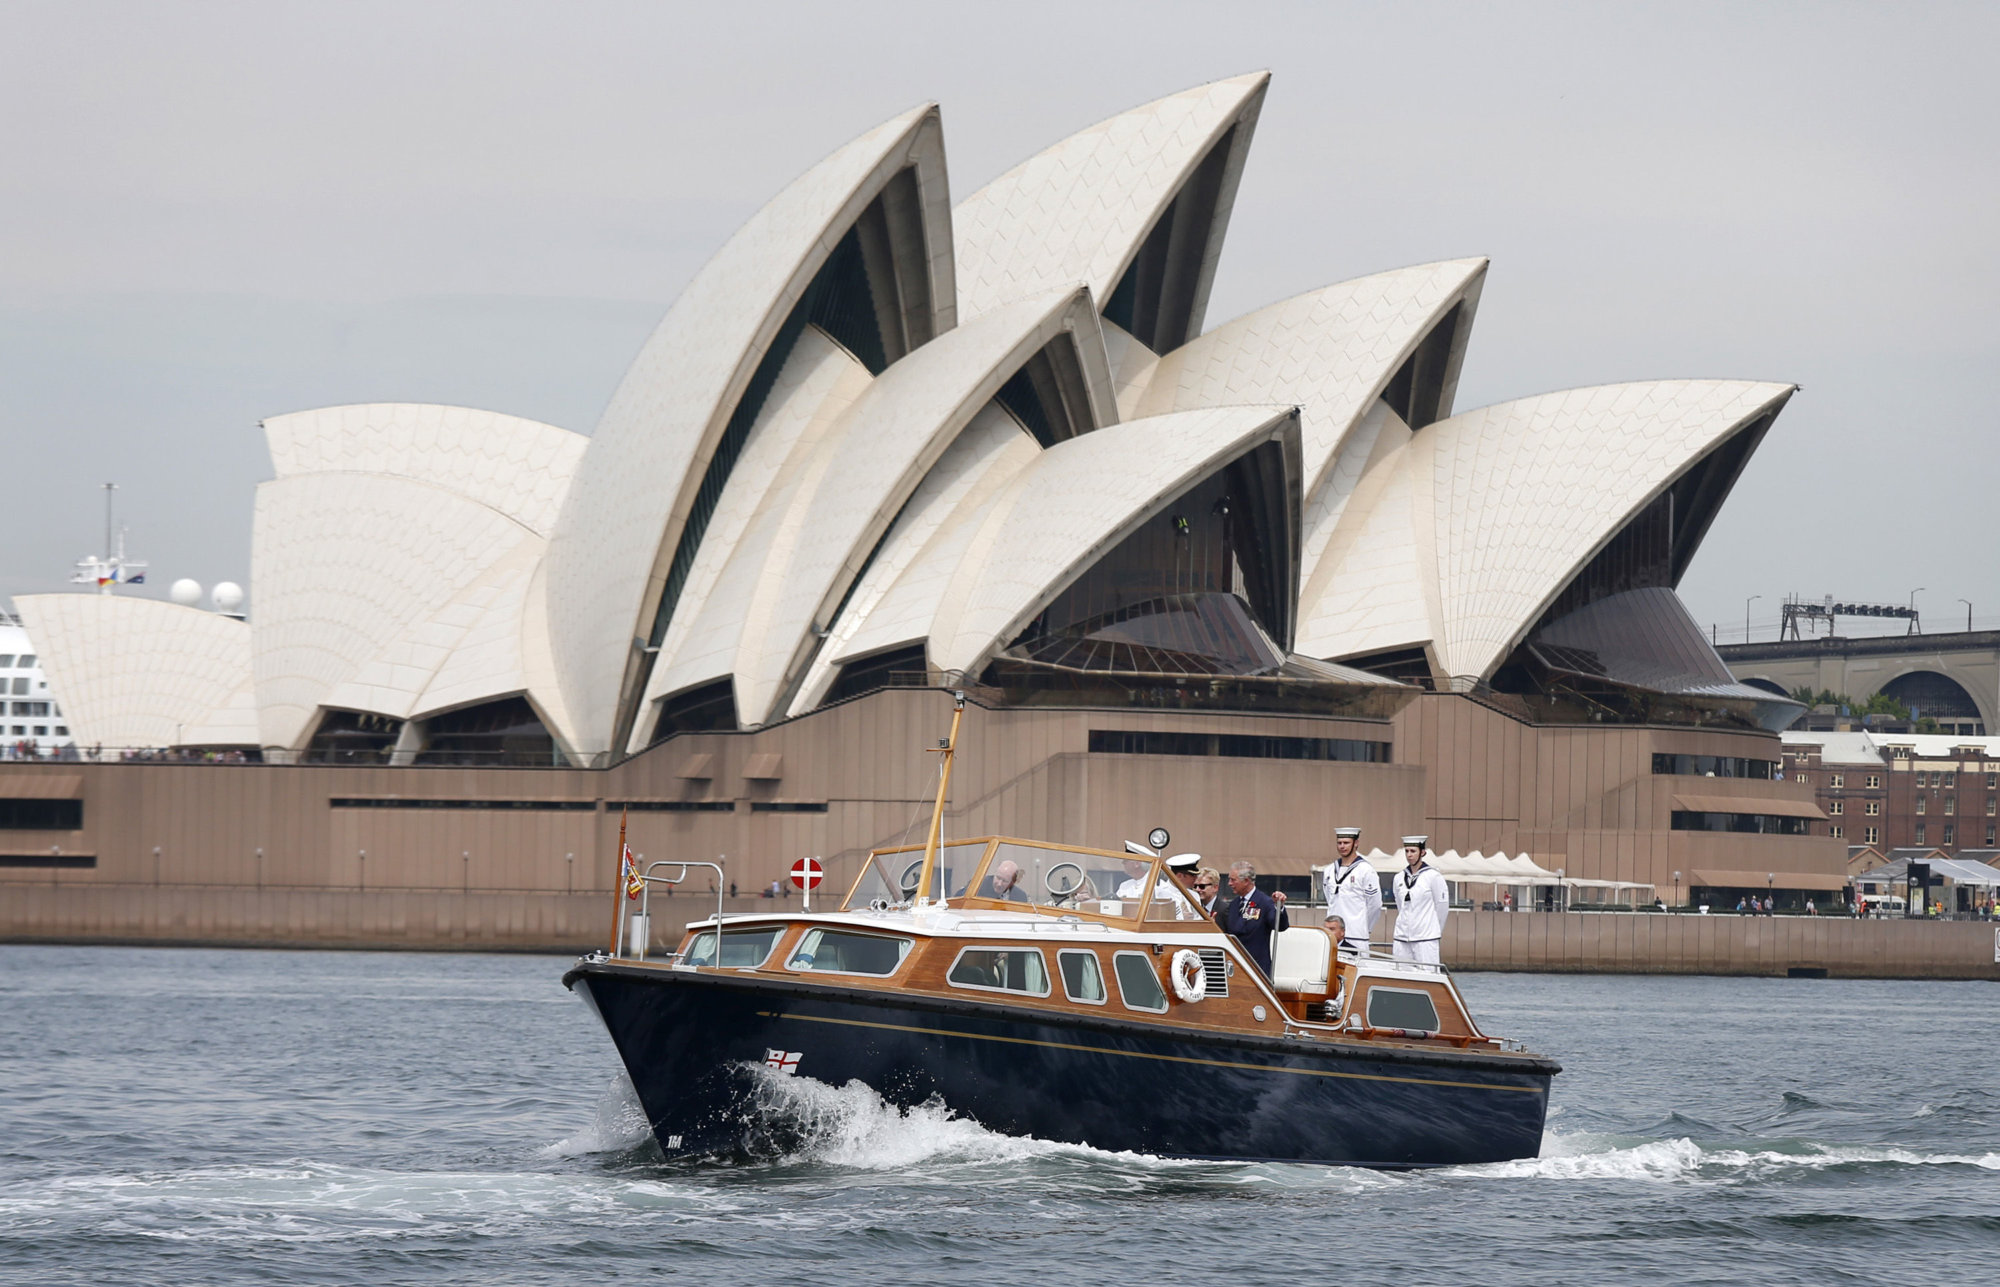 Britain's Prince Charles, at center in blue suit, travels on the Admiral's Barge past the Sydney Opera House as he crosses Sydney Harbour in Sydney, Australia Friday, Nov. 9, 2012. (AP Photo/Tim Wimborne, Pool)